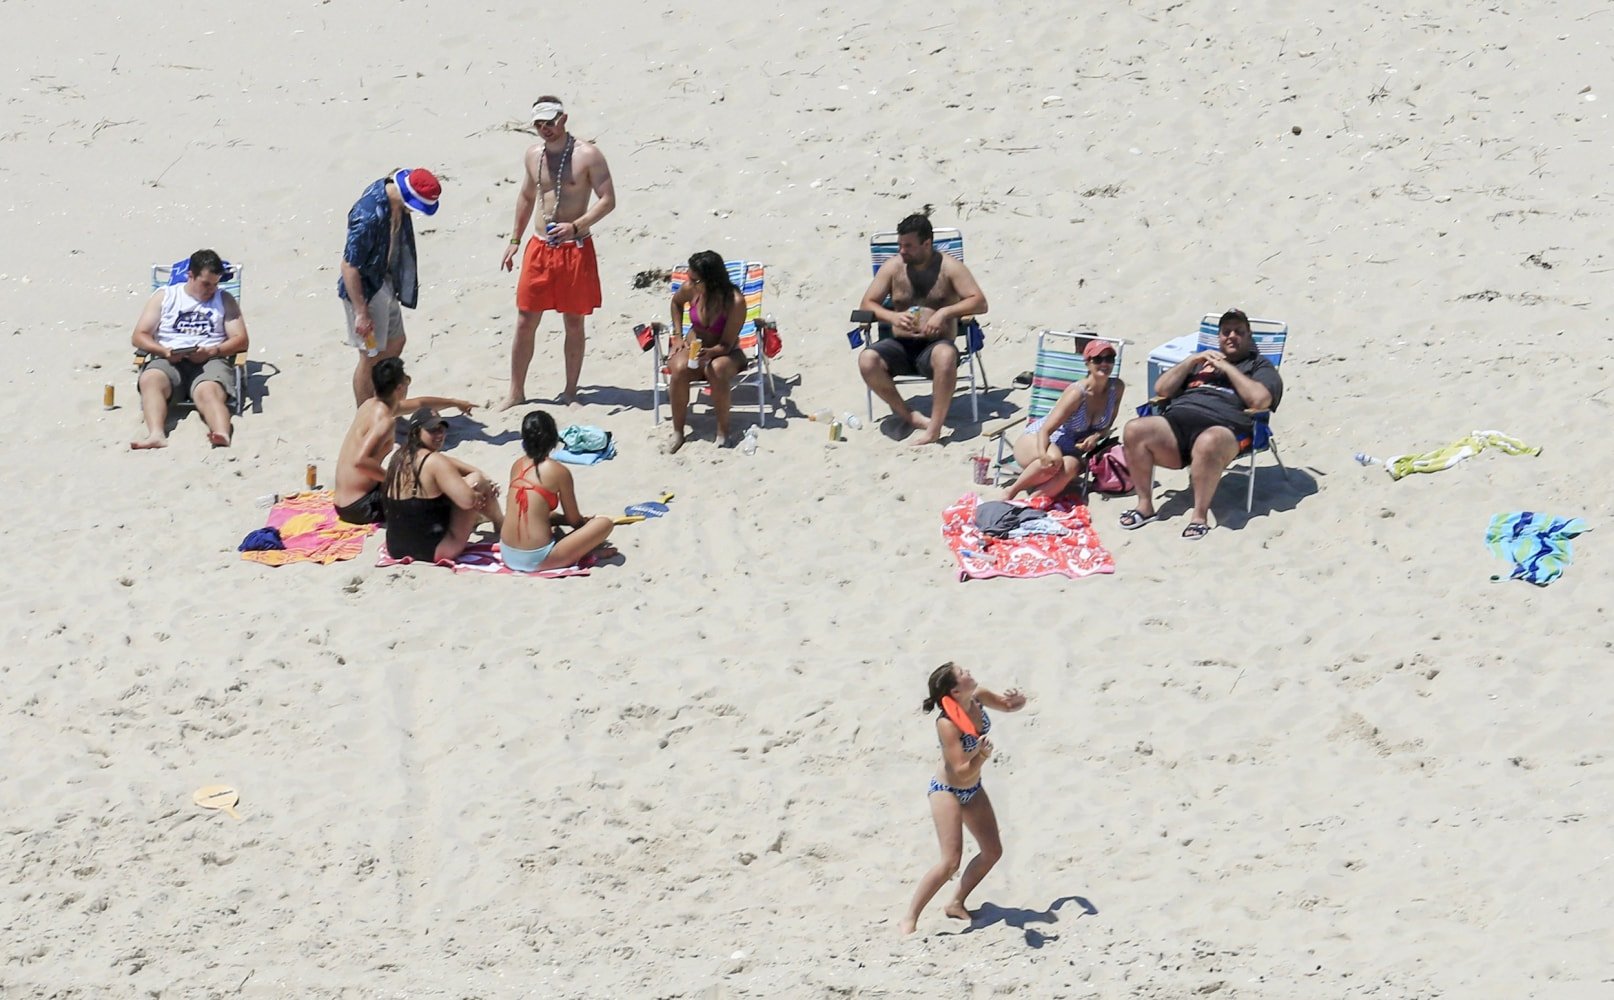 Chris Christie Right Uses The Beach With His